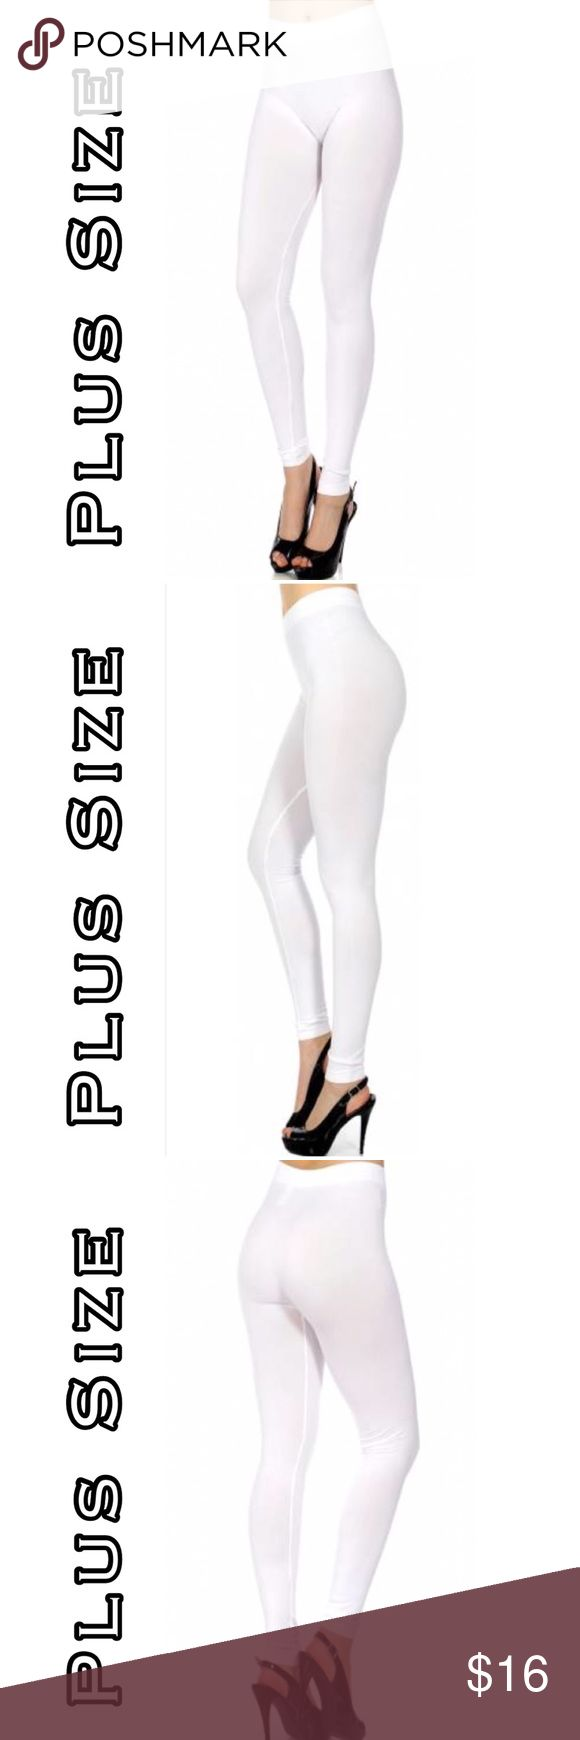 OS Fits 1X-3X White Leggings Solid white seamless leggings. Fits 1X-3x. Beauty Shines On Boutique Pants Leggings